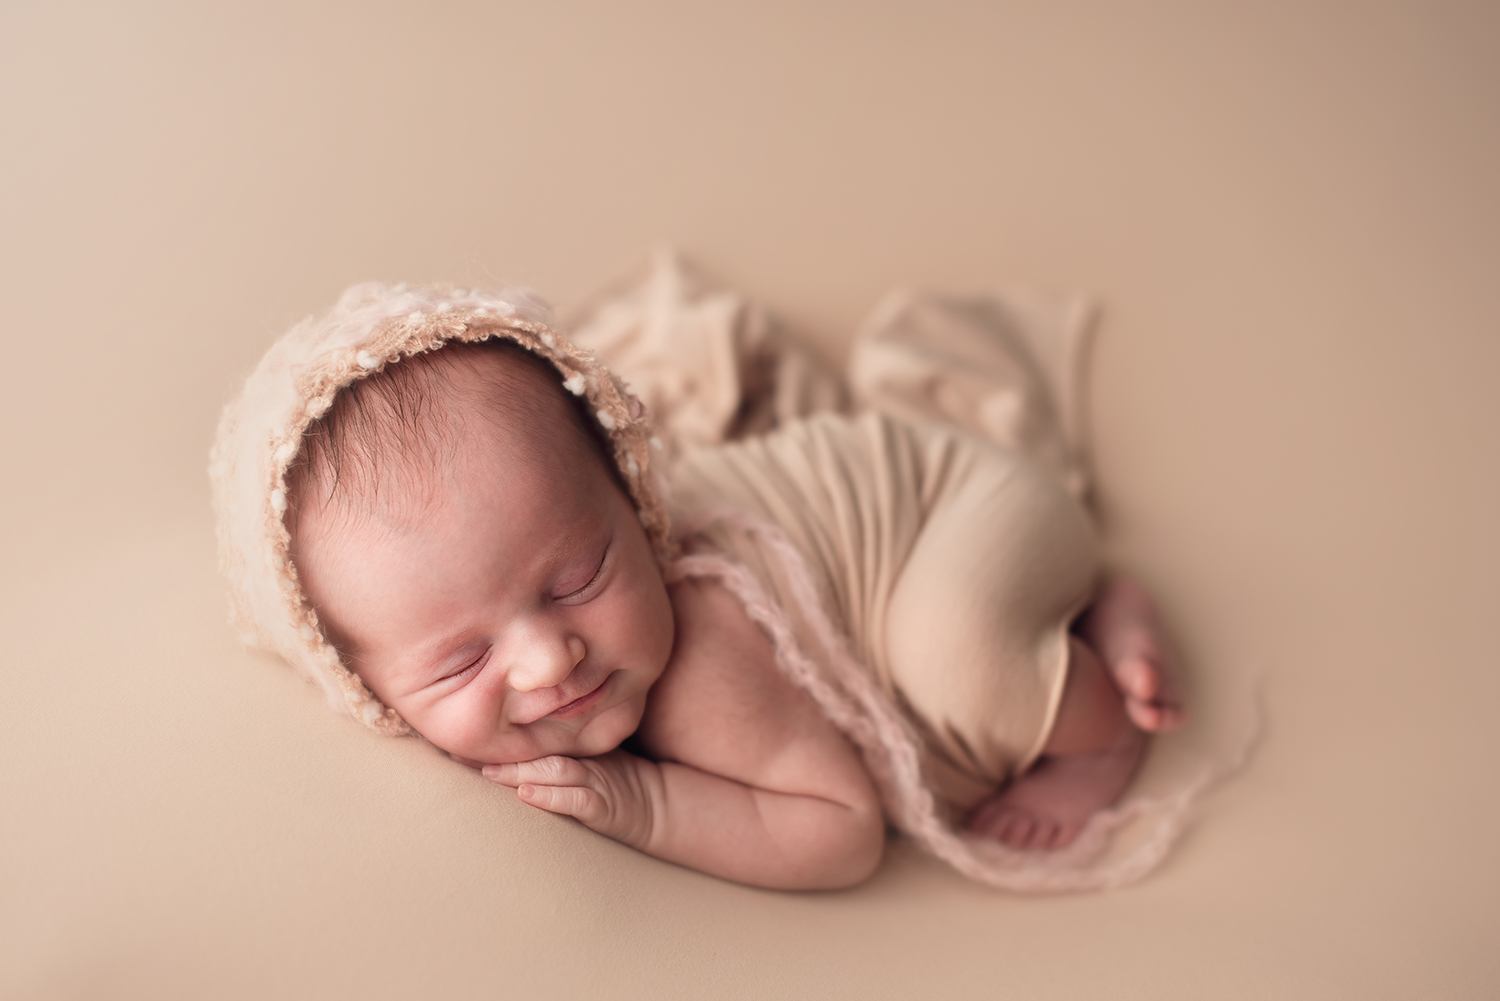 powell-ohio-newborn-photographer-barebabyphotography.jpg